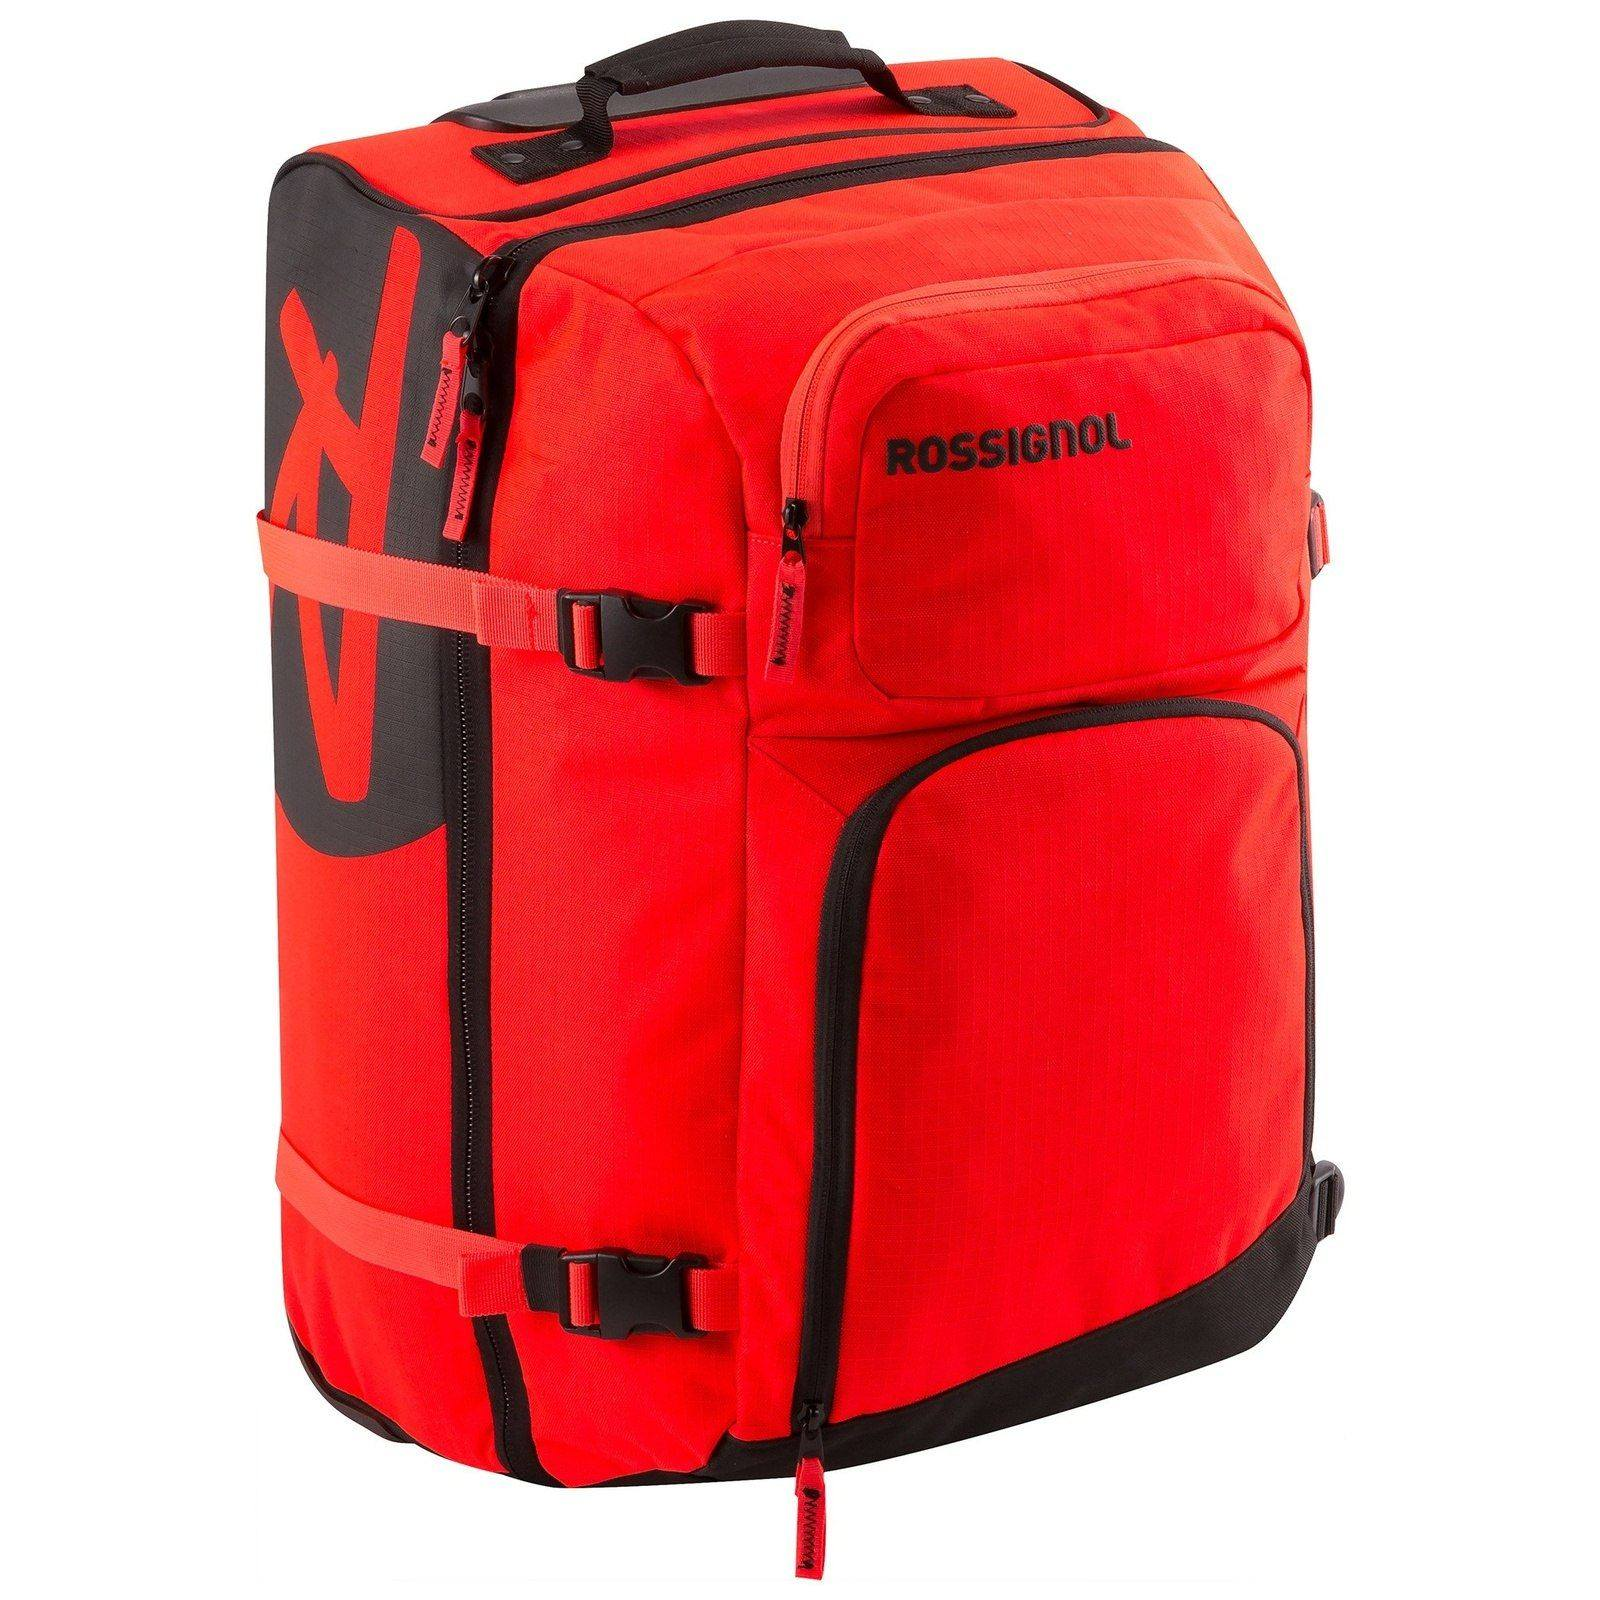 best authentic online retailer new high quality Rossignol Hero Cabin Bag Luggage